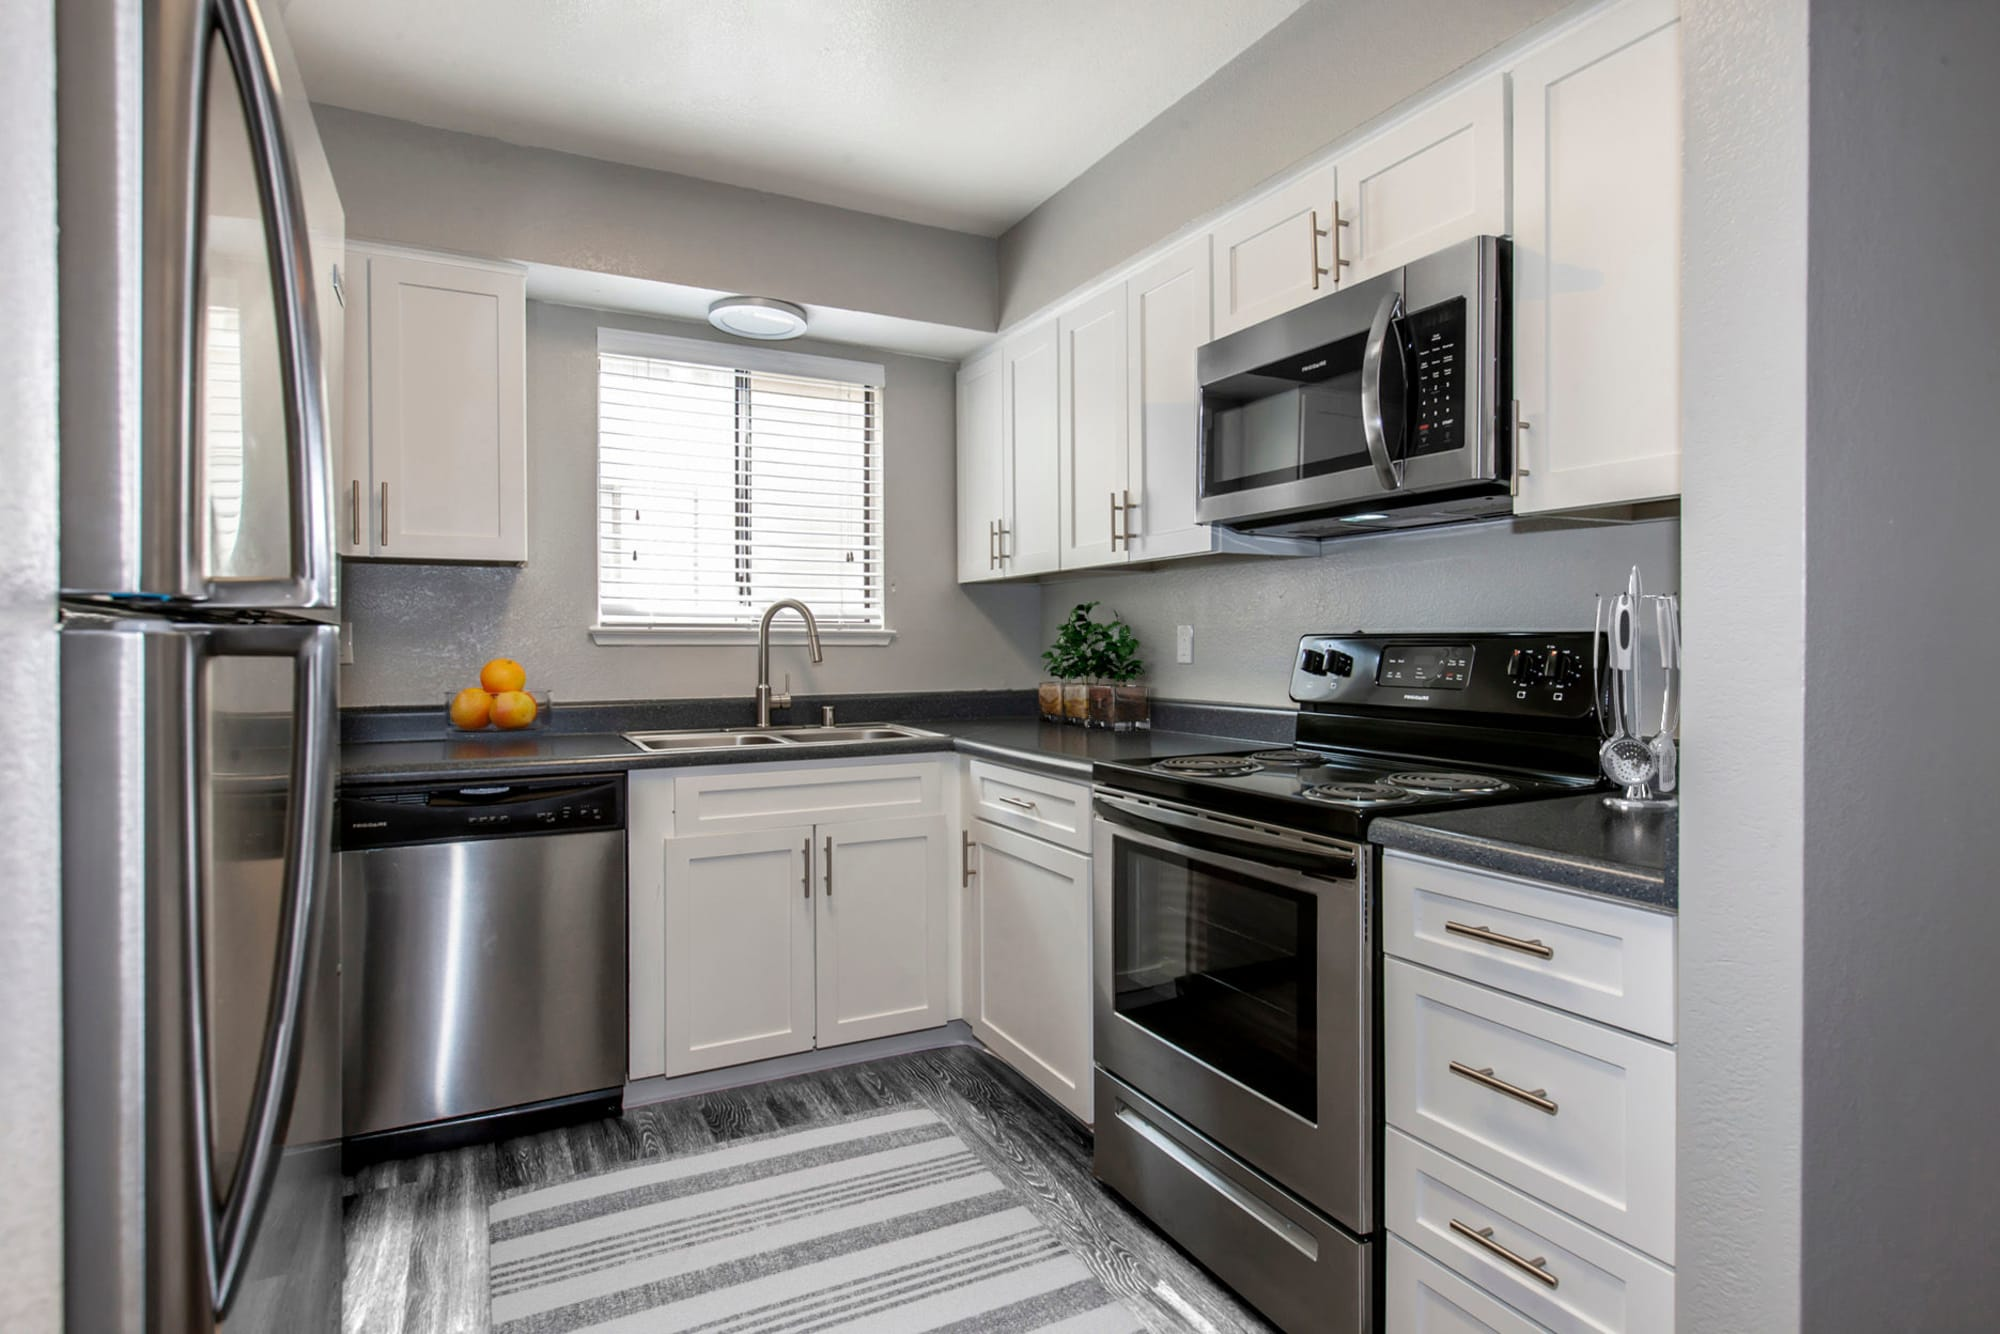 Renovated kitchen with white cabinets and stainless steel appliances at Bennington Apartments in Fairfield, California